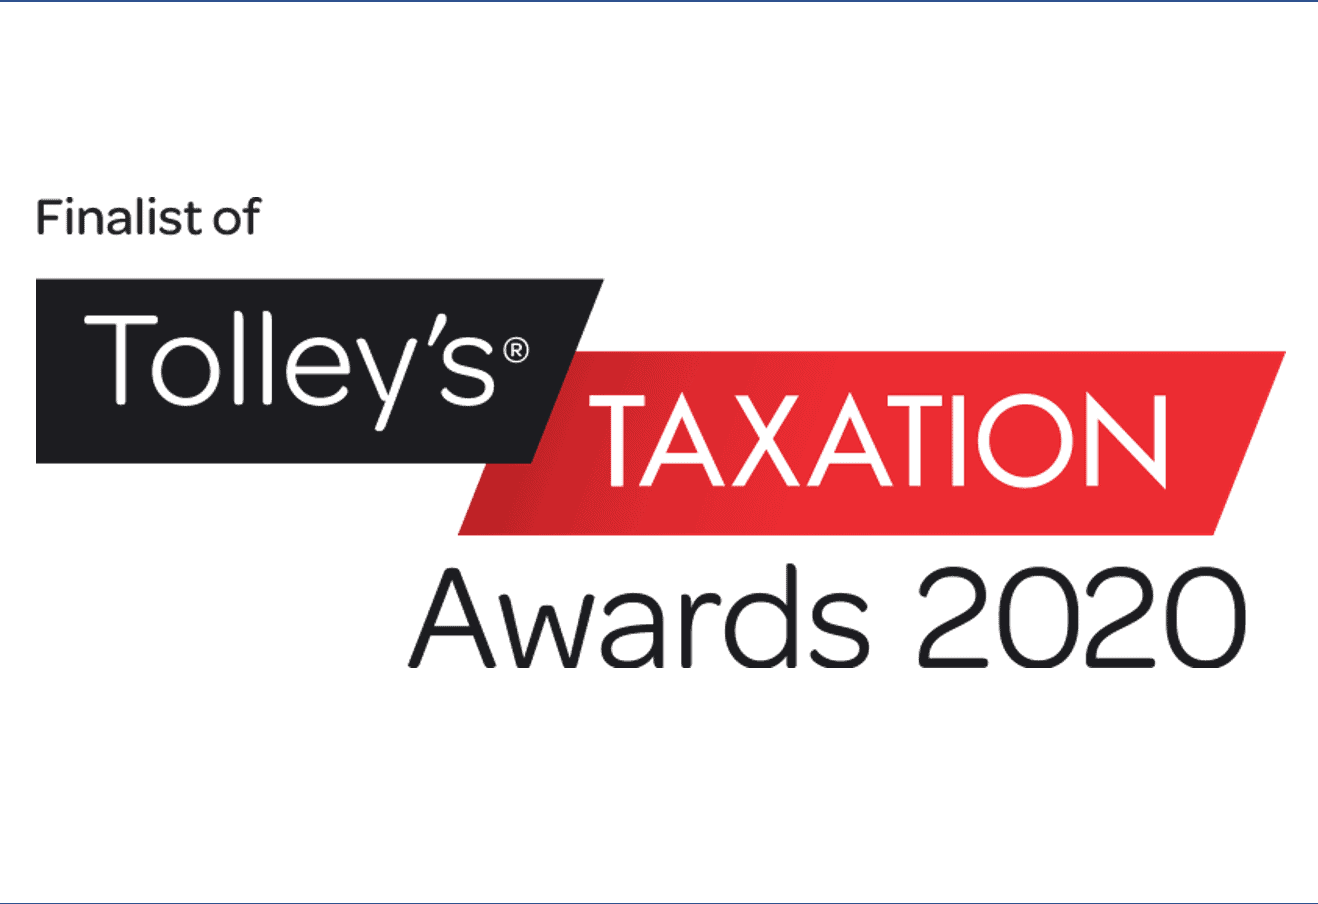 Tolleys Taxation Awards 2020